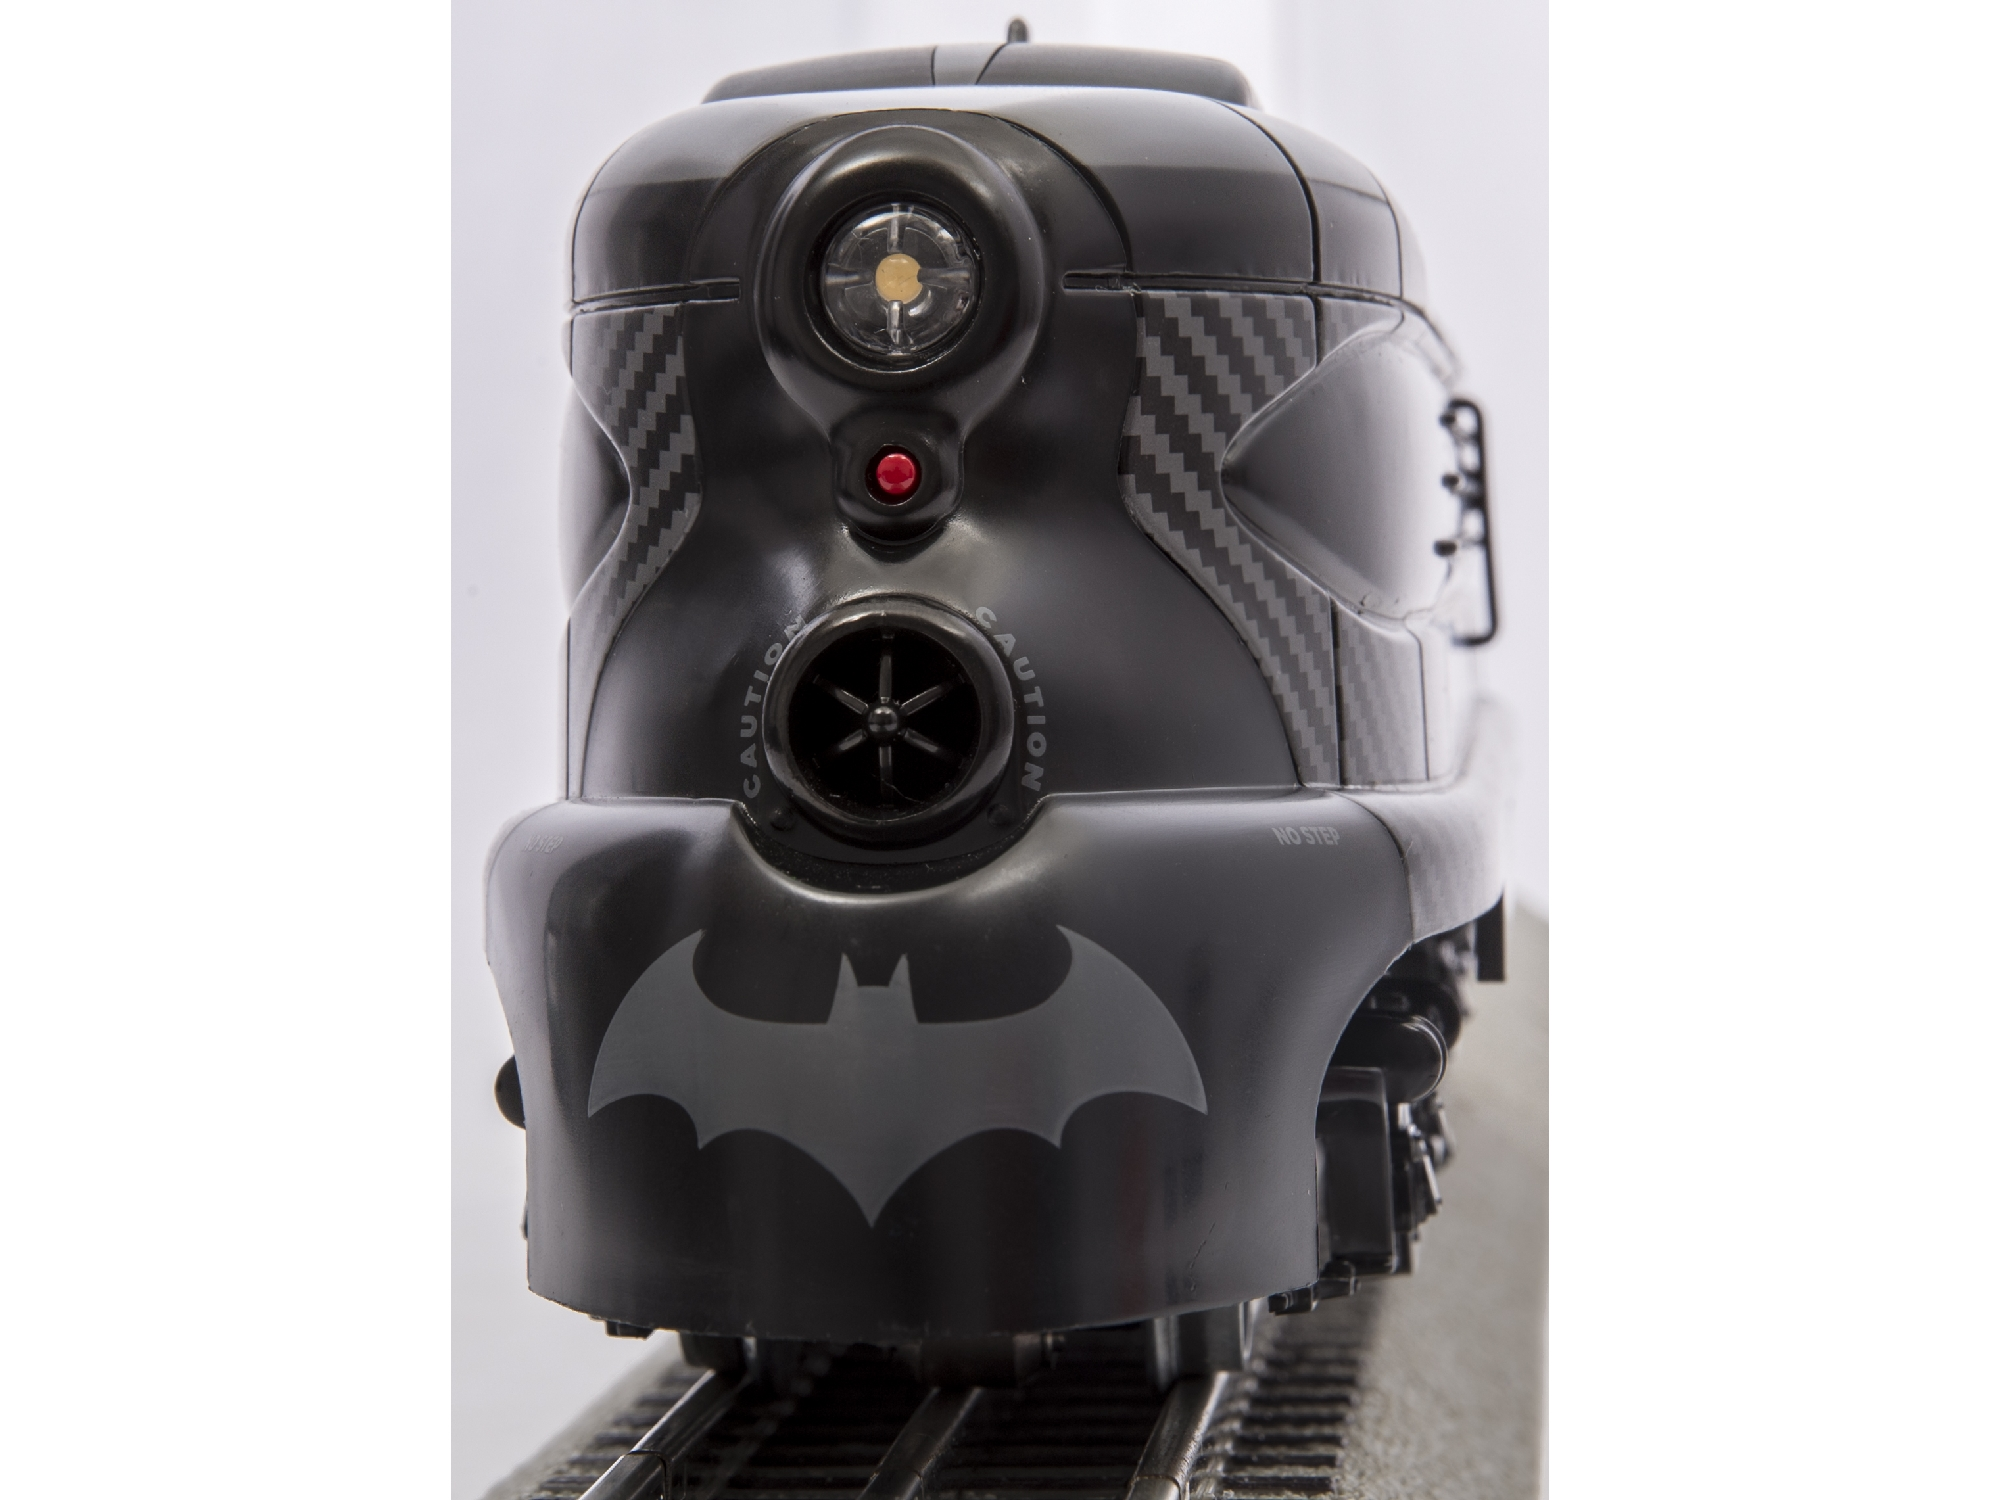 6-81470 DC COMICS BATMAN PHANTOM LIONCHIEF™ TRAIN SET